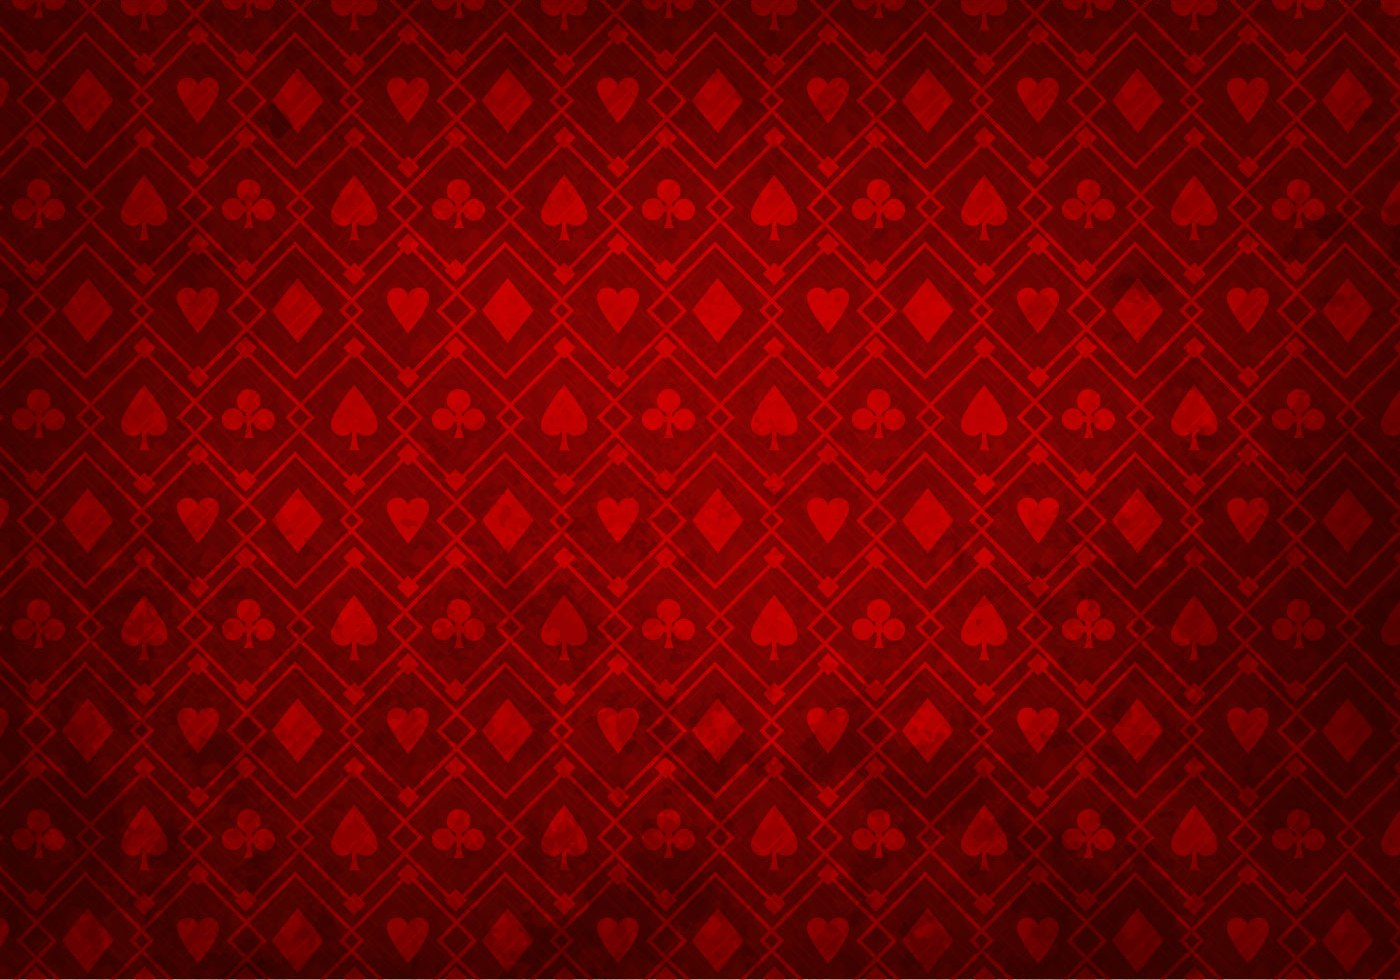 Plain Black Wallpaper For Walls Vector Red Poker Background Download Free Vector Art